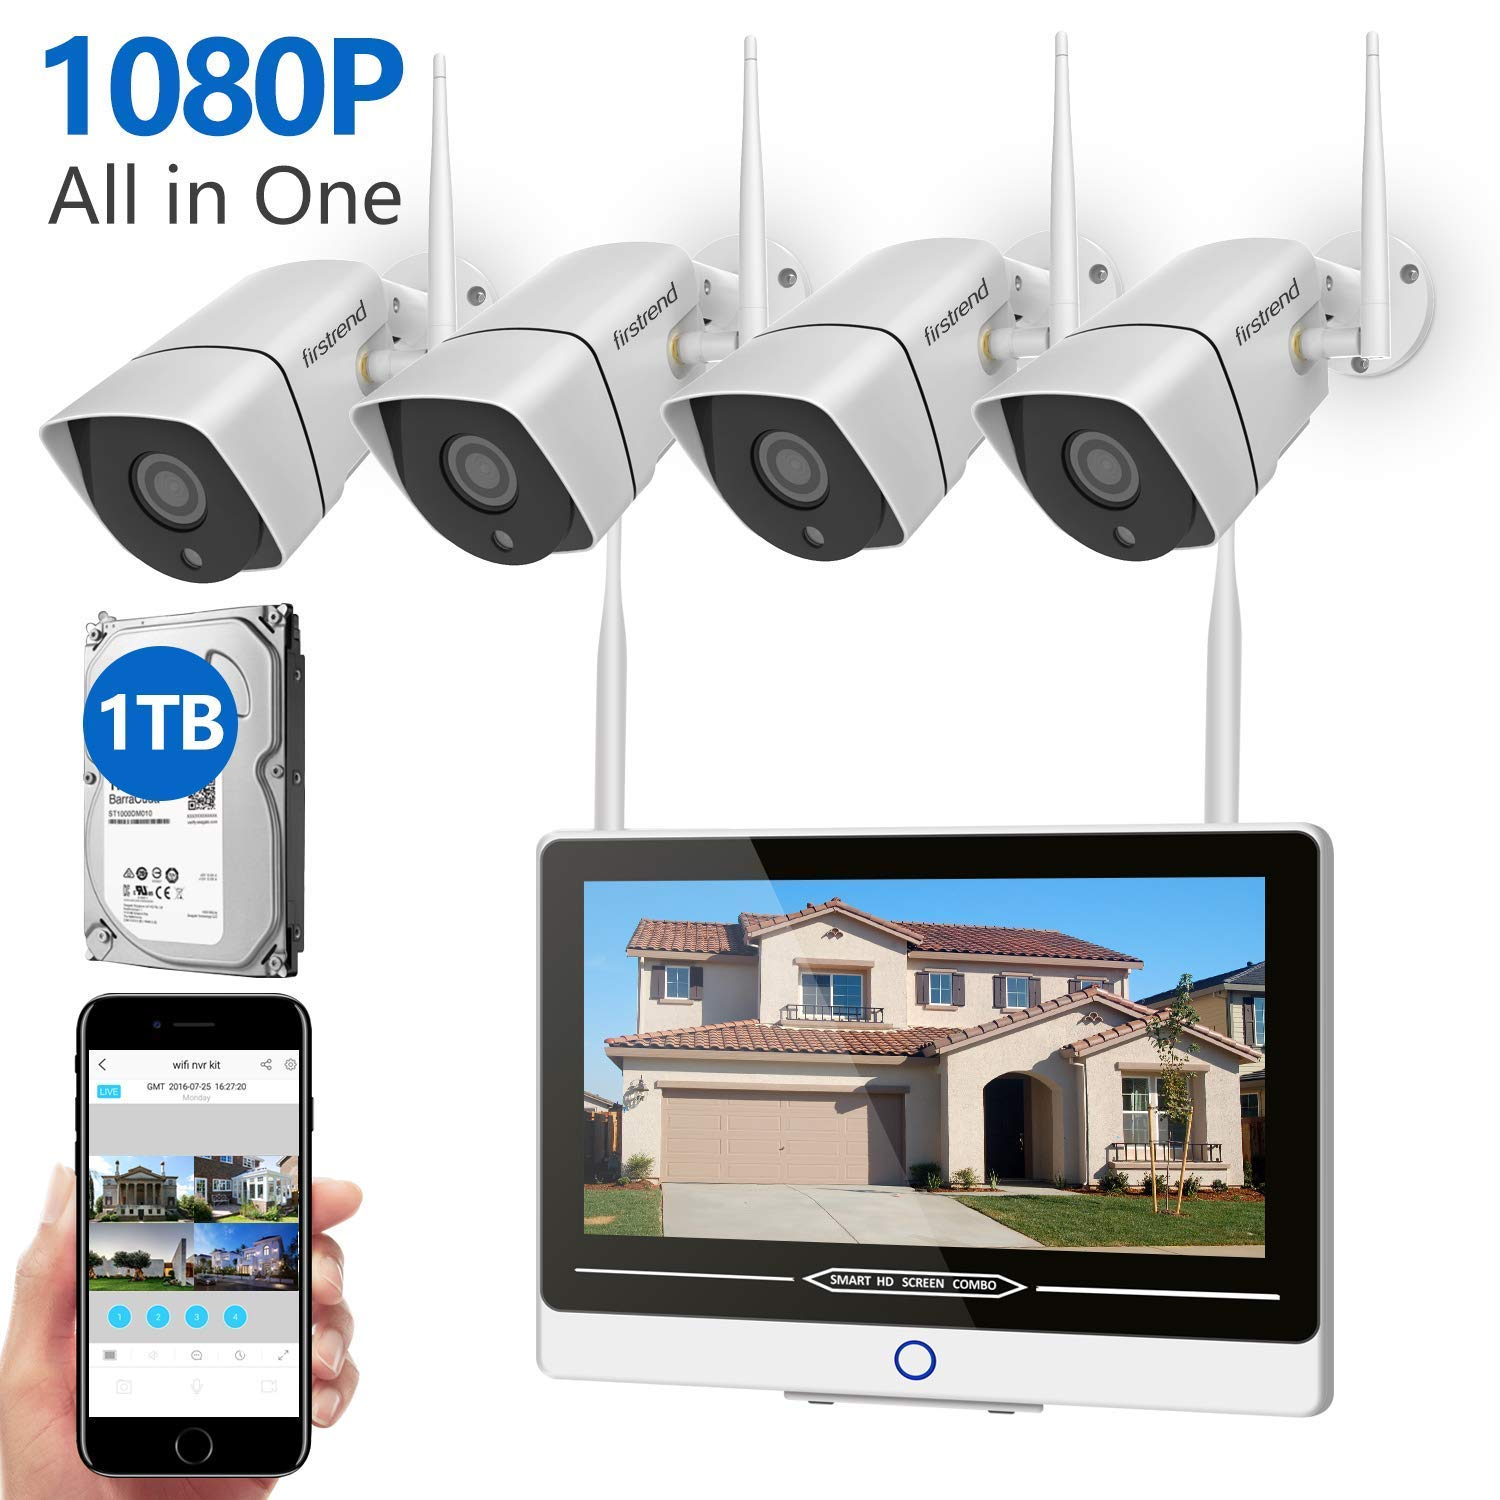 Security Camera System Wireless with Monitor,Firstrend 1080P 8CH Wireless Security System Outdoor Indoor with 4PCS 1080P WiFi IP Security Cameras 12 Inch Monitor and 1TB Hard Drive Installed